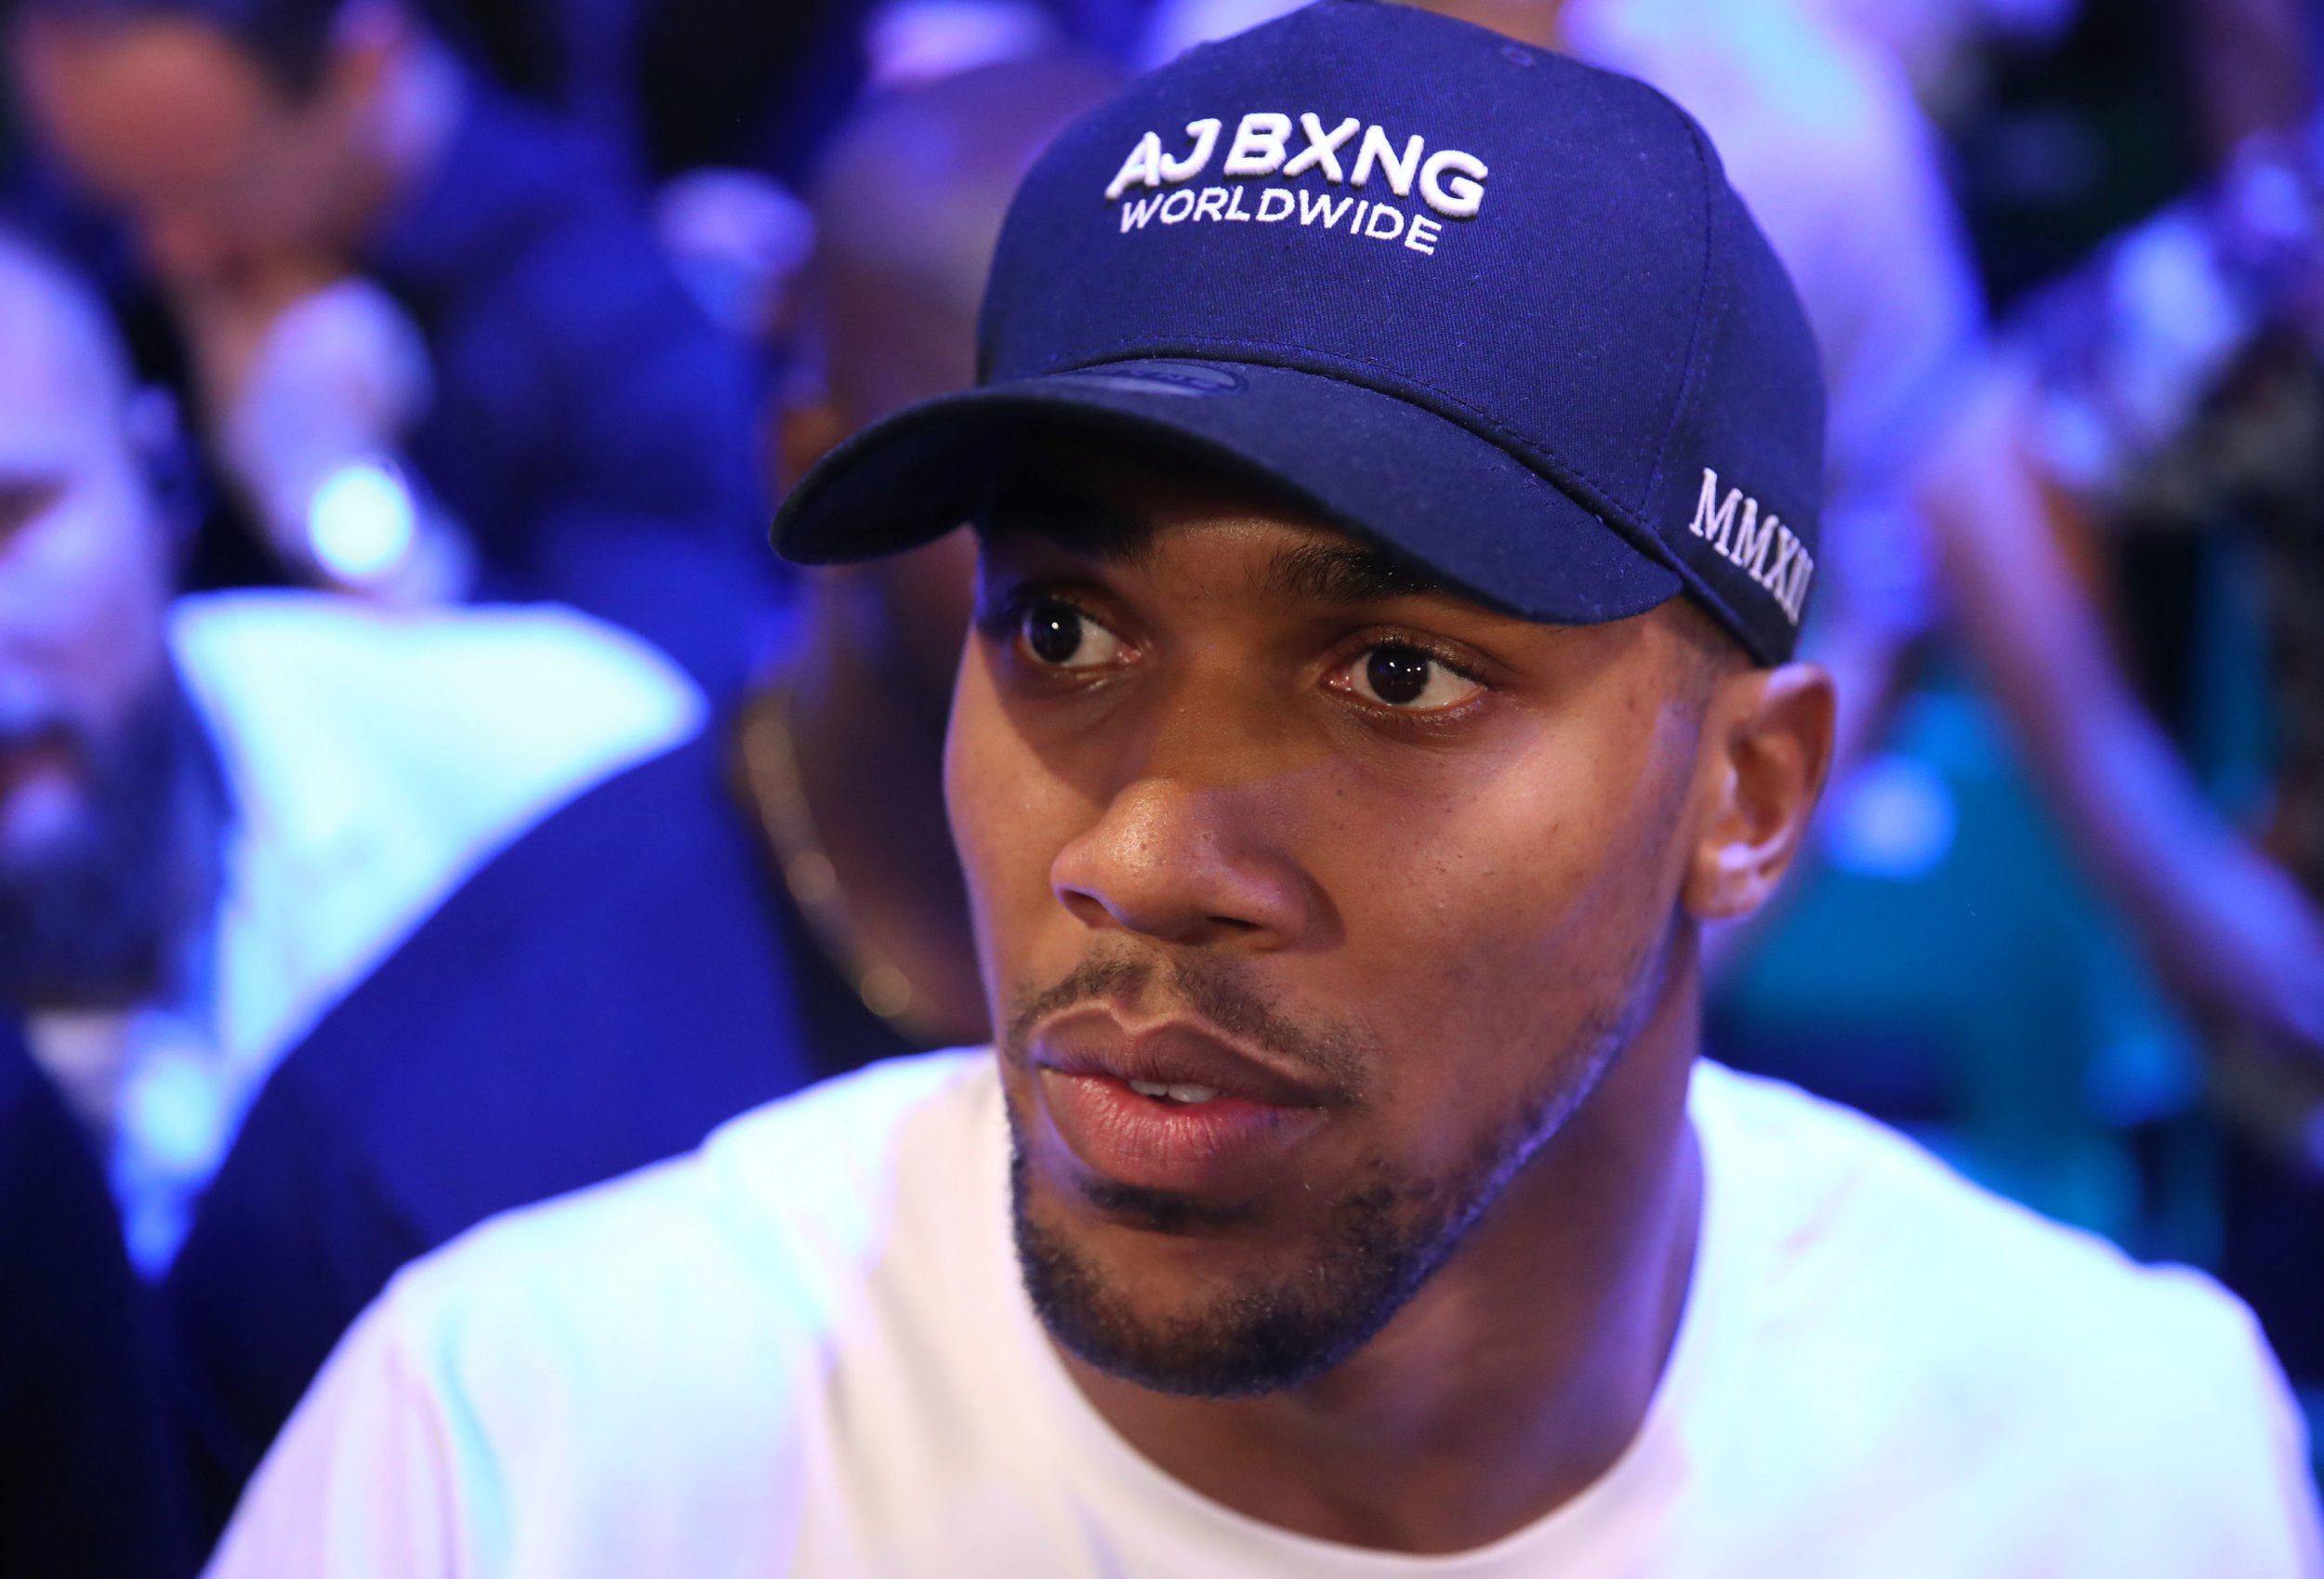 Anthony Joshua ringside at York Hall, London. PRESS ASSOCIATION Photo. Picture date: Wednesday June 6, 2018. See PA story BOXING London. Photo credit should read: Adam Davy/PA Wire